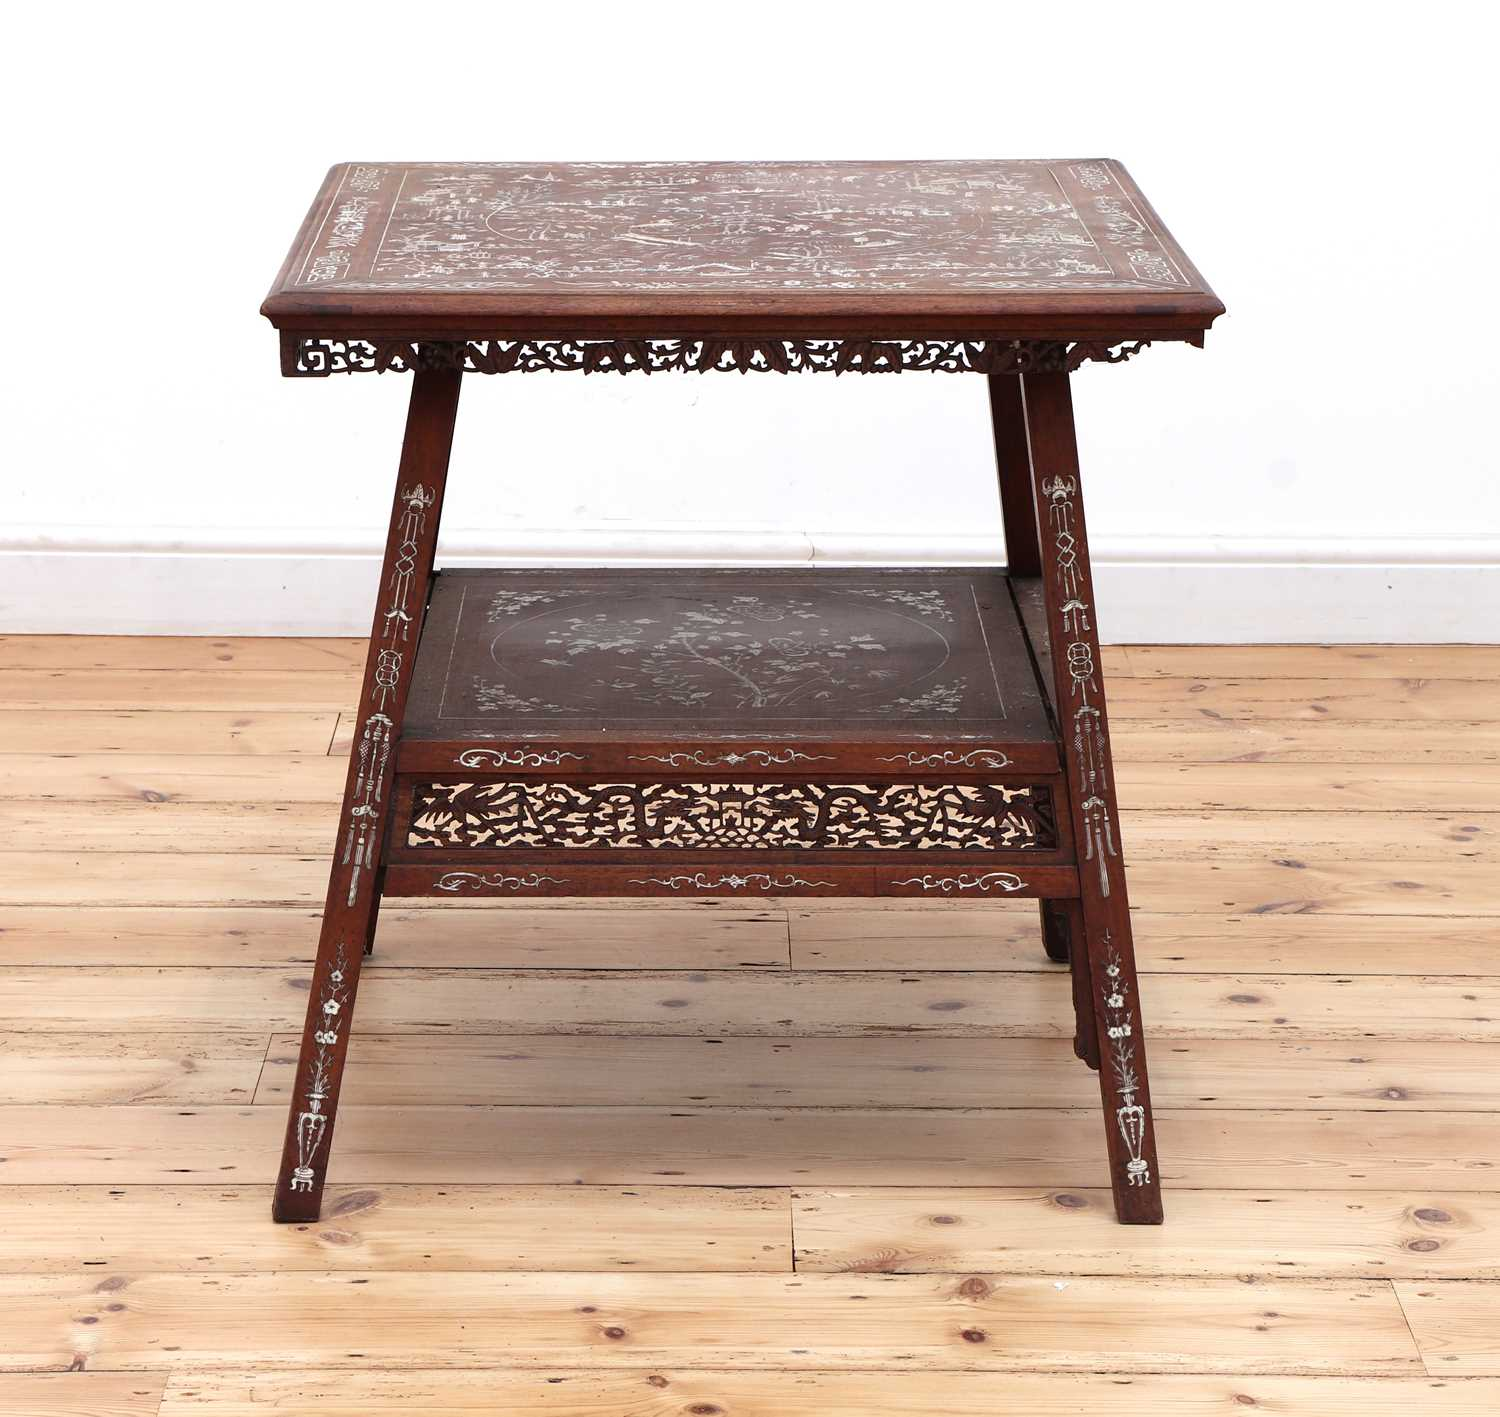 A Chinese hardwood and ivory inlaid occasional table, - Image 2 of 10